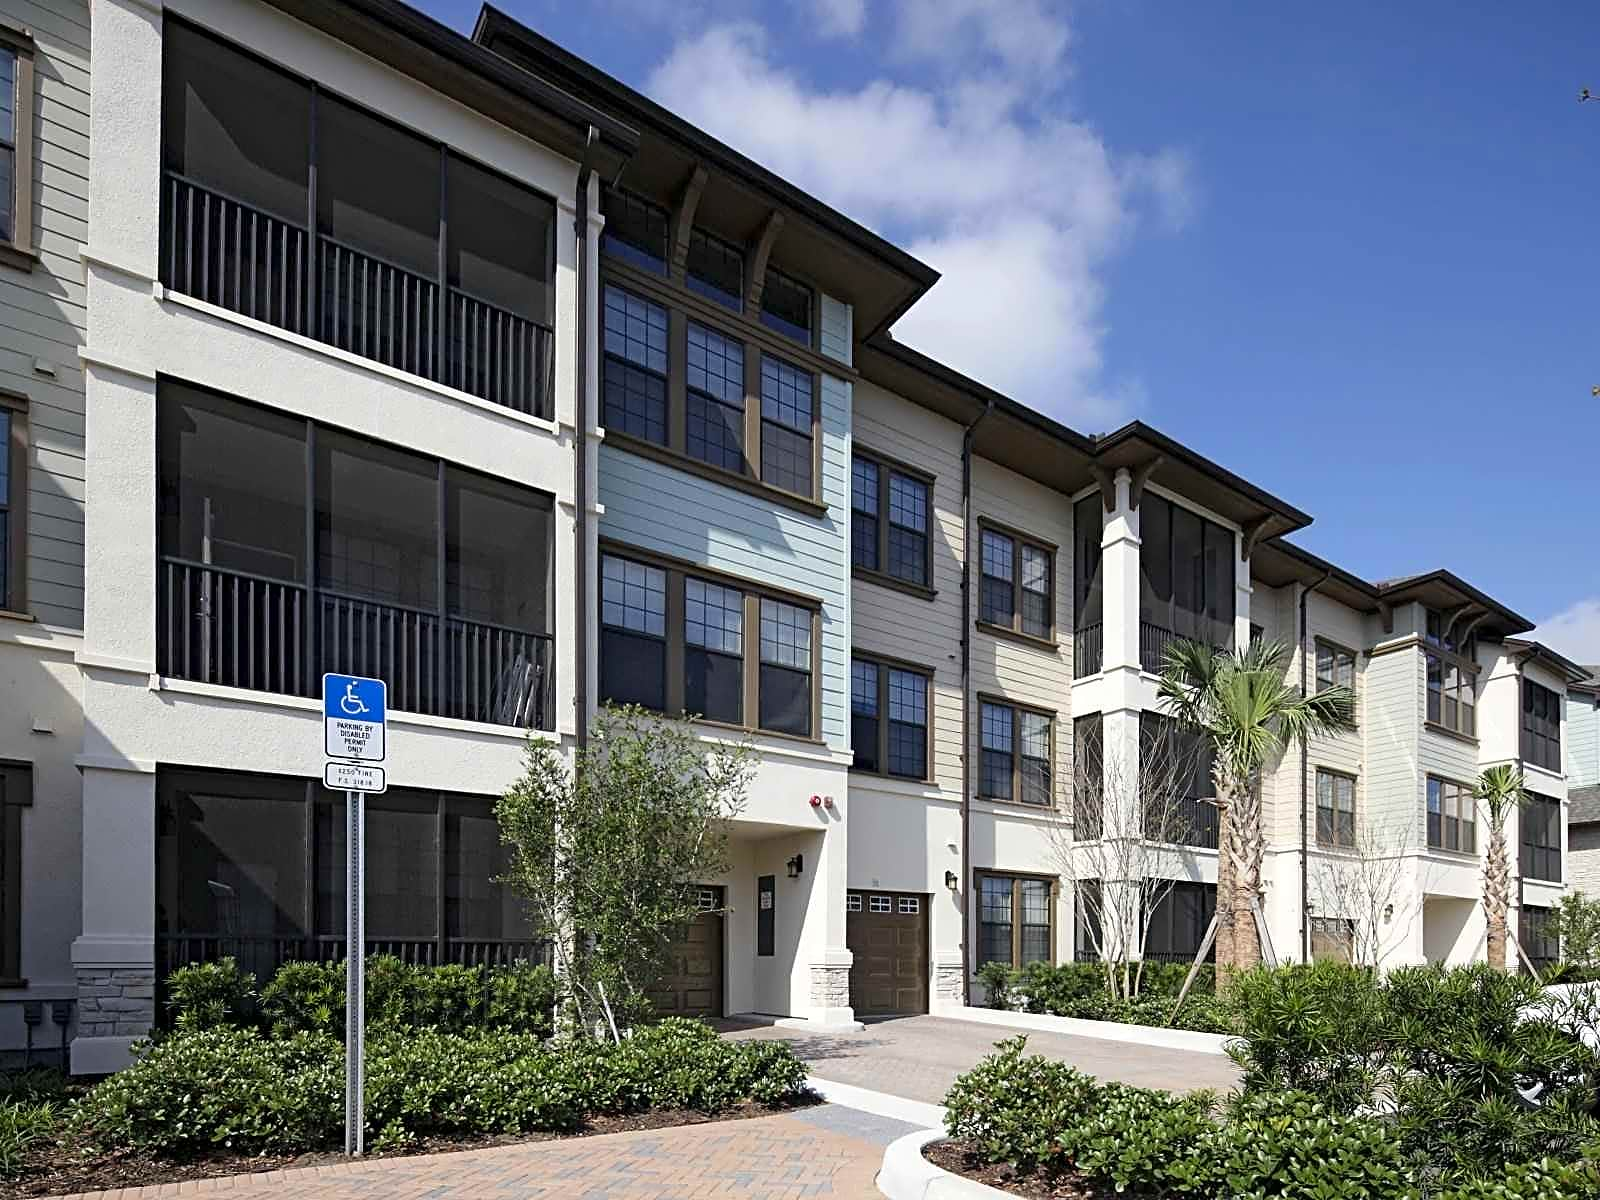 Apartments By International Drive Orlando Fl